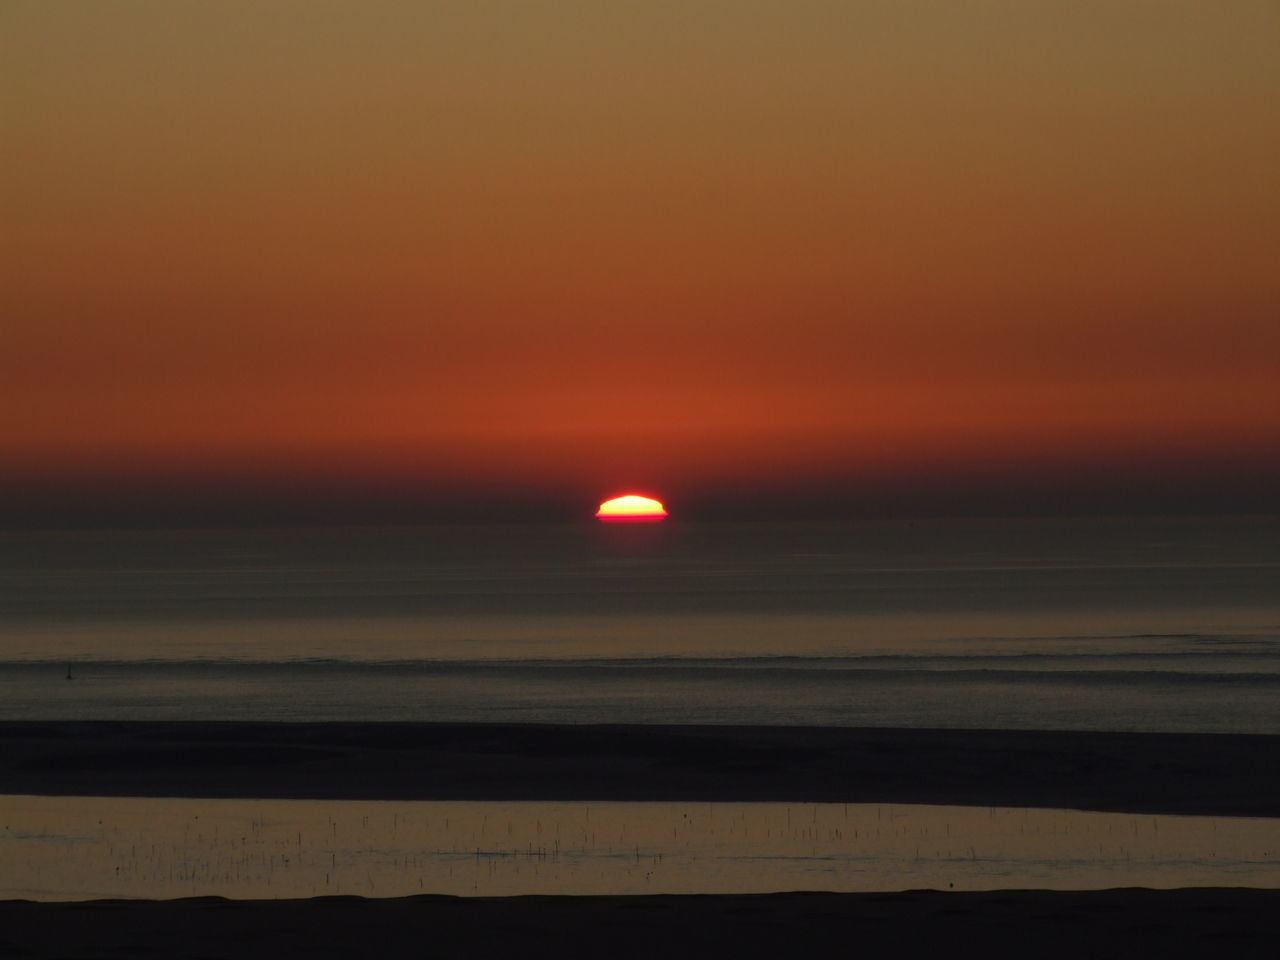 sunset, beauty in nature, scenics, nature, sea, orange color, tranquil scene, tranquility, horizon over water, sky, sun, outdoors, idyllic, water, no people, beach, moon, landscape, astronomy, day